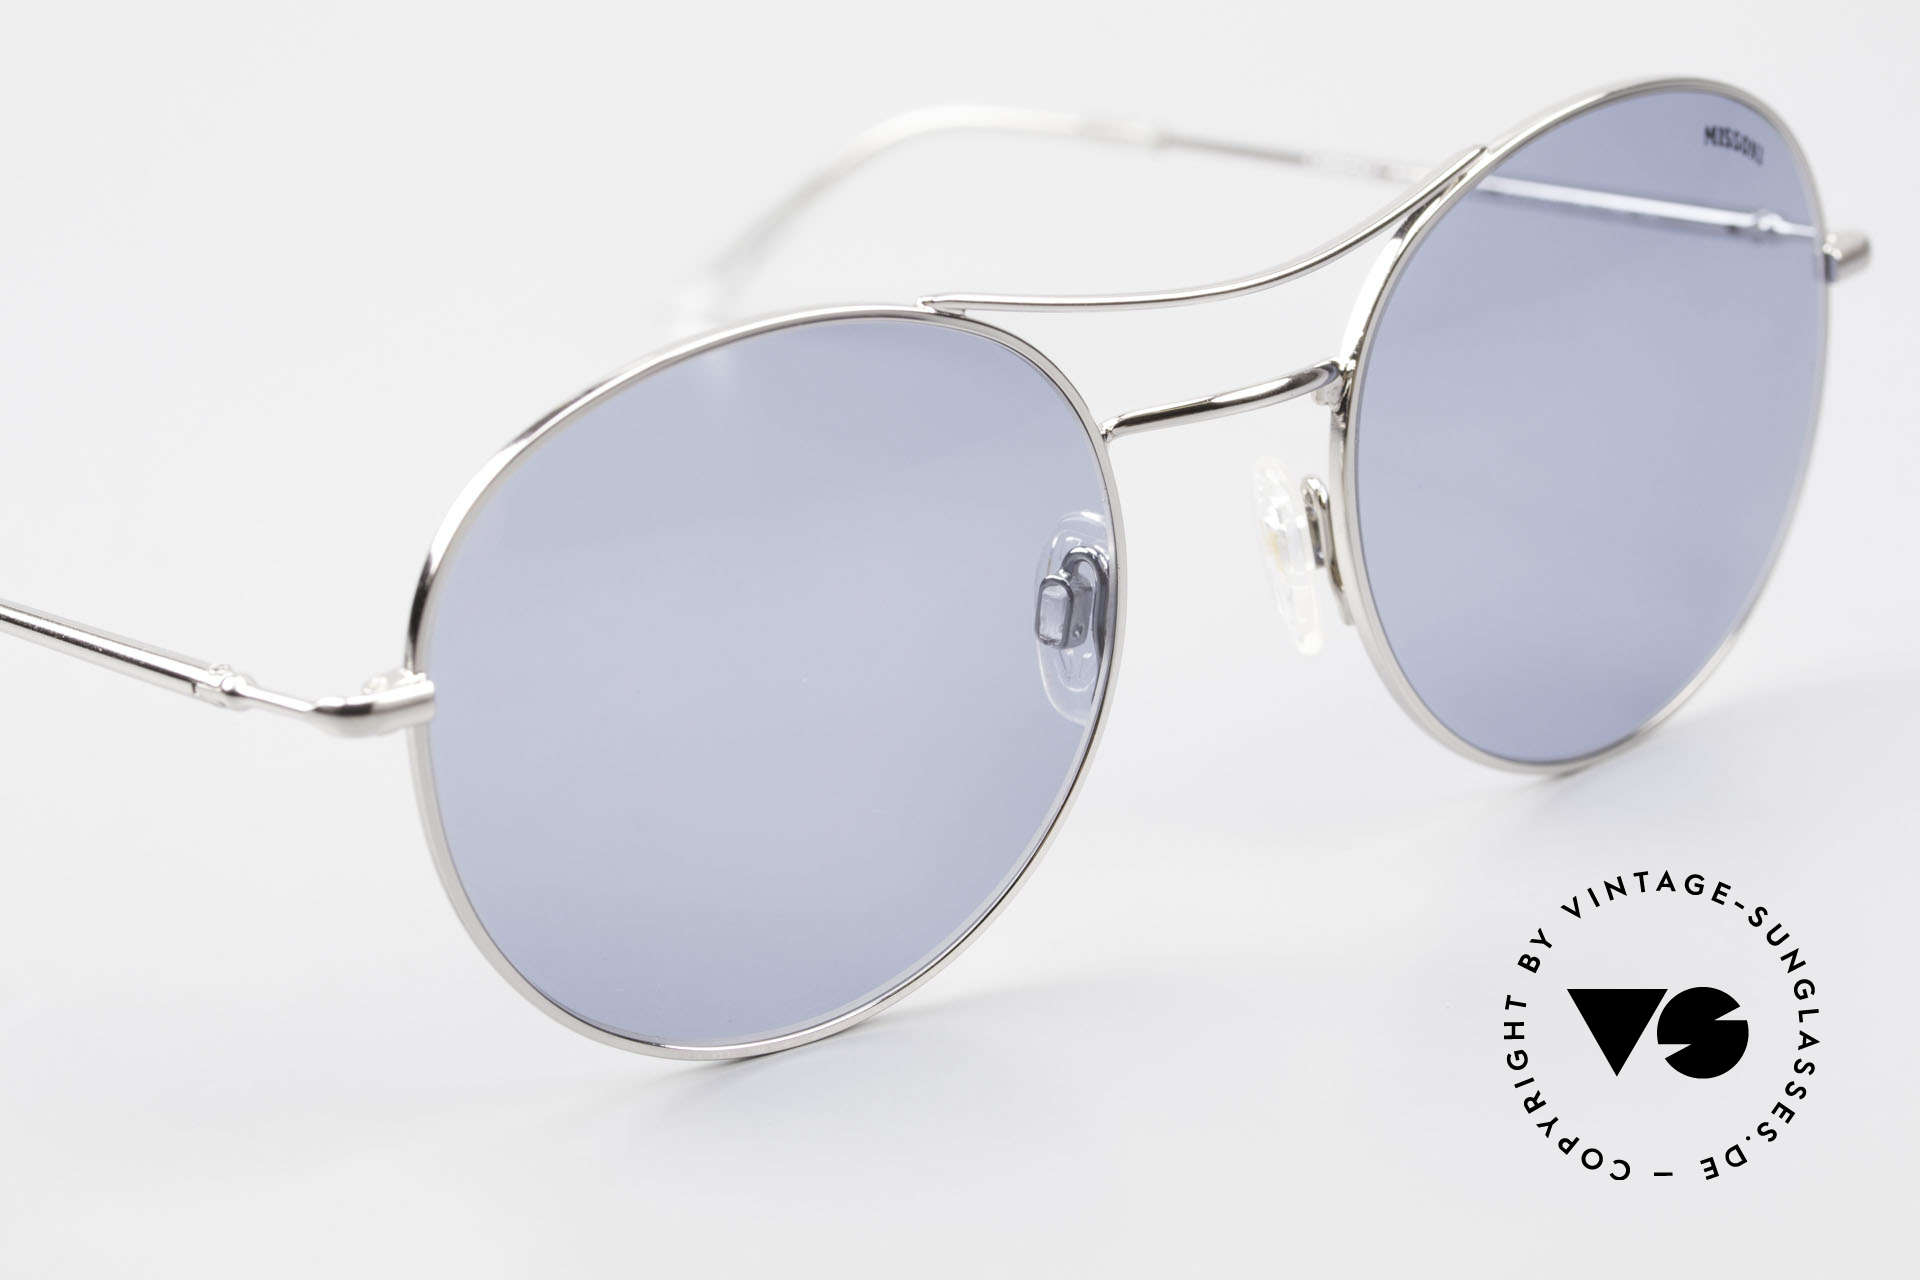 Missoni 0439 Round Aviator 90's Sunglasses, never worn (like all our vintage shades by MISSONI), Made for Men and Women